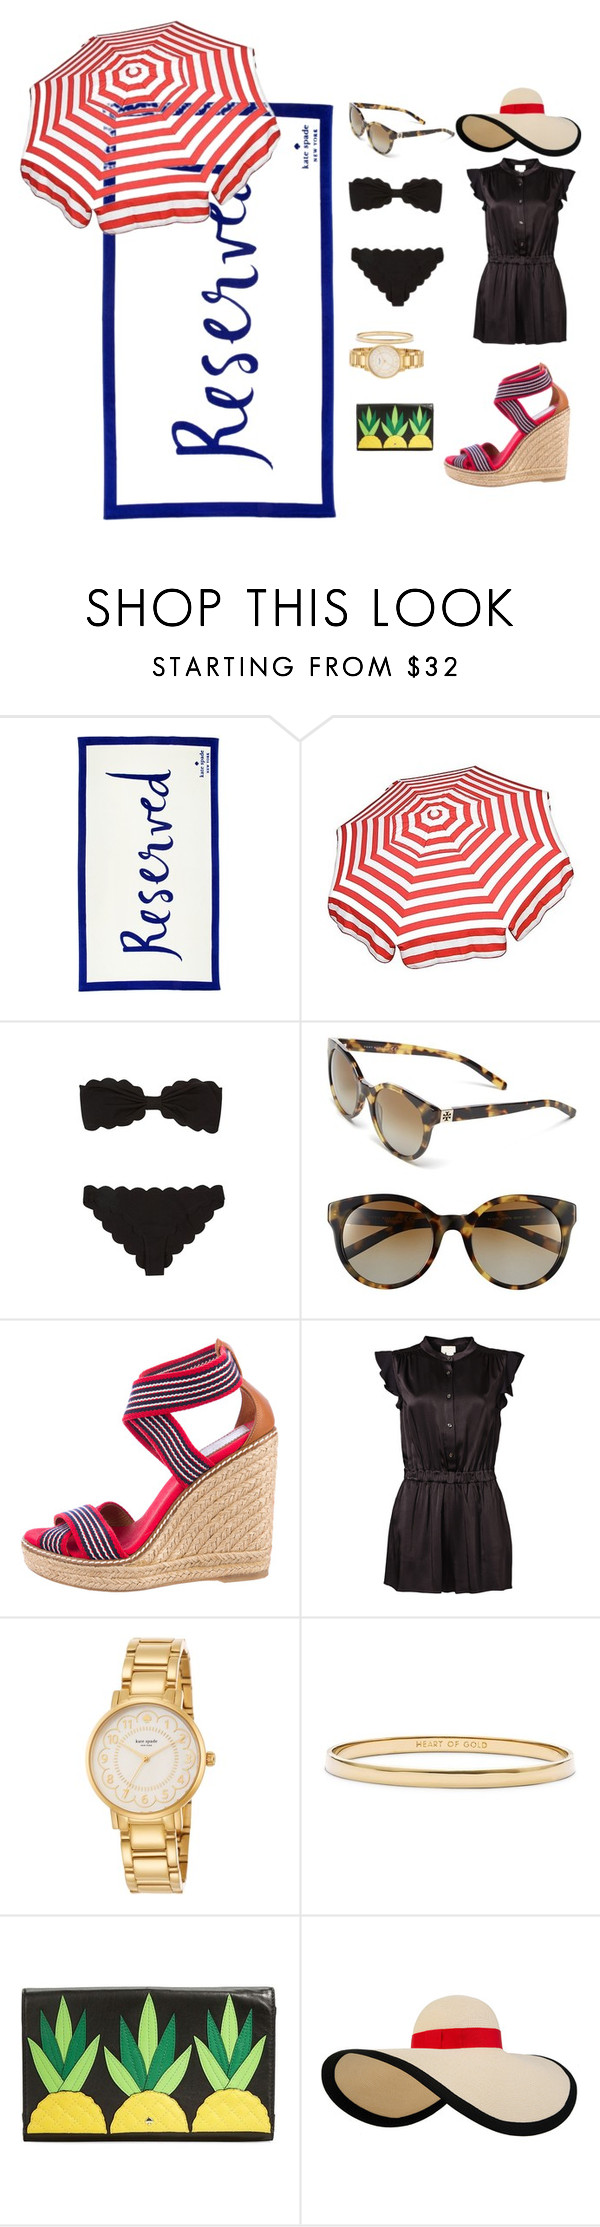 """""""Beach to Town {southern prep}"""" by holly0099 ❤ liked on Polyvore featuring Kate Spade, Parasol, Marysia Swim, Tory Burch and Eugenia Kim"""